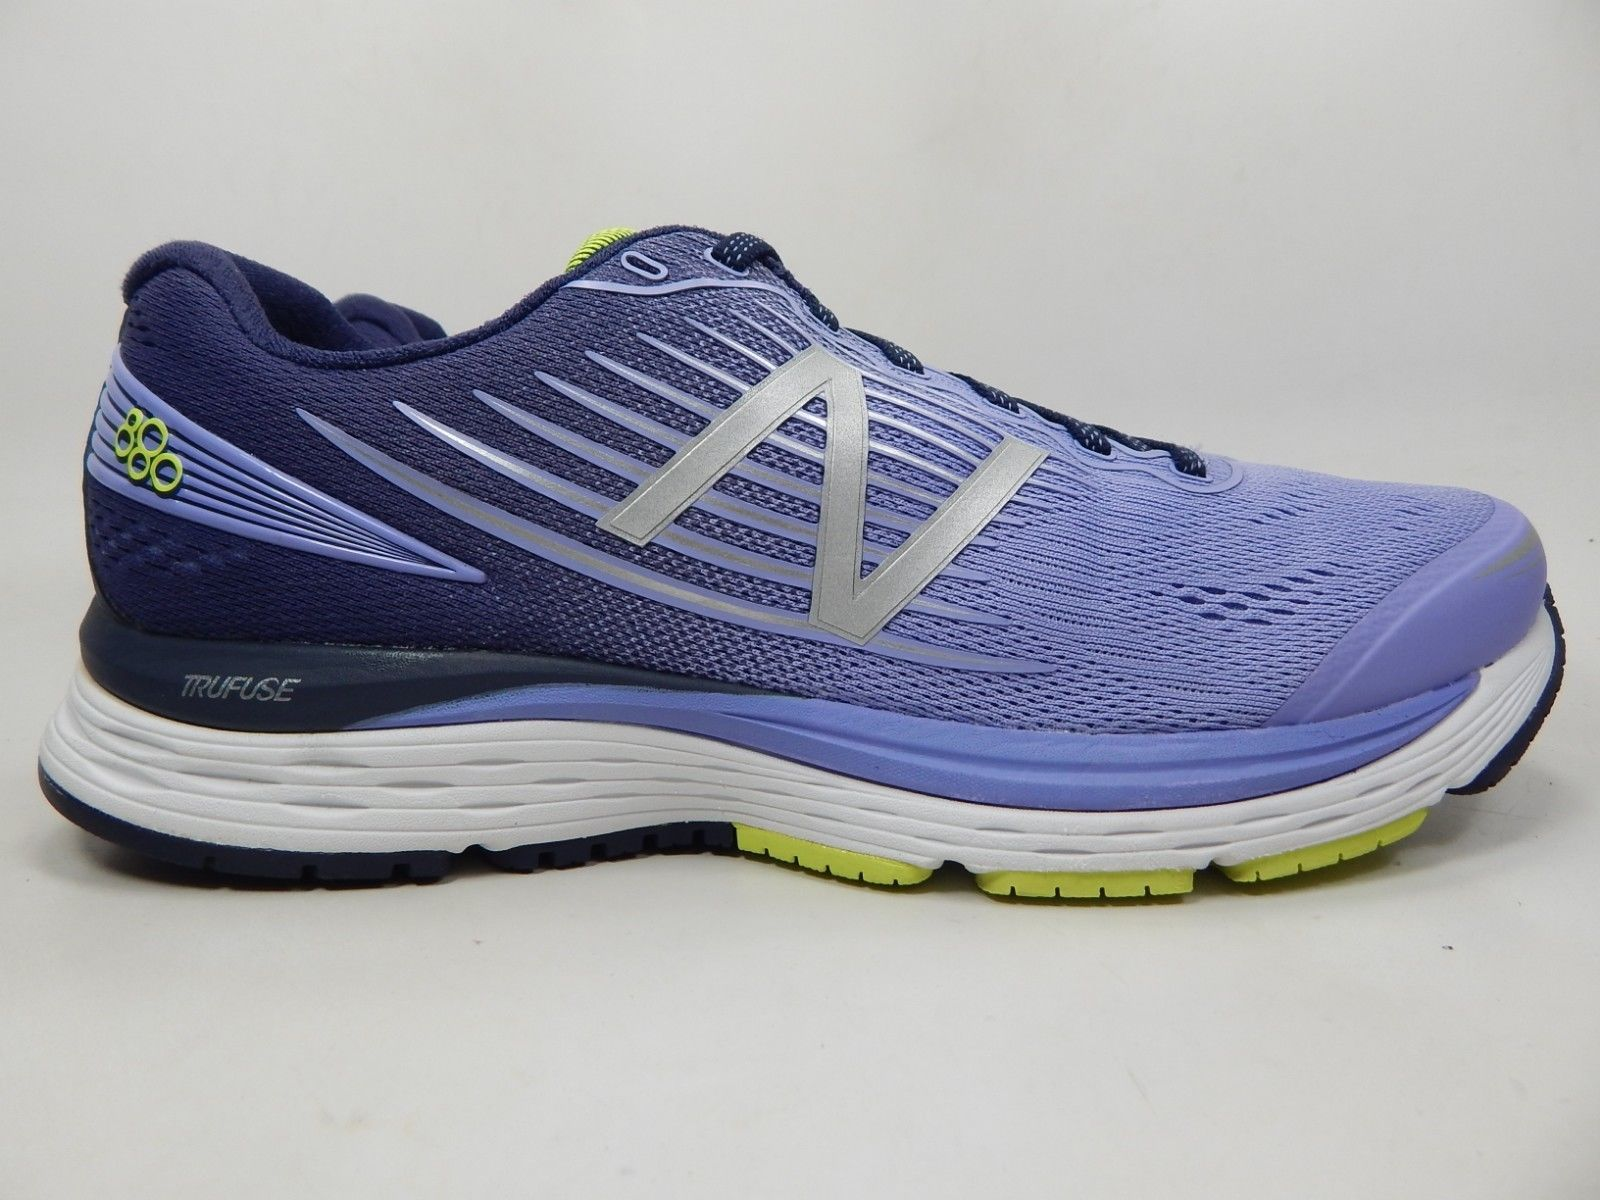 New Balance 880 v8 Size US 11.5 D WIDE EU 43.5 Women's Running Shoes W880BY8